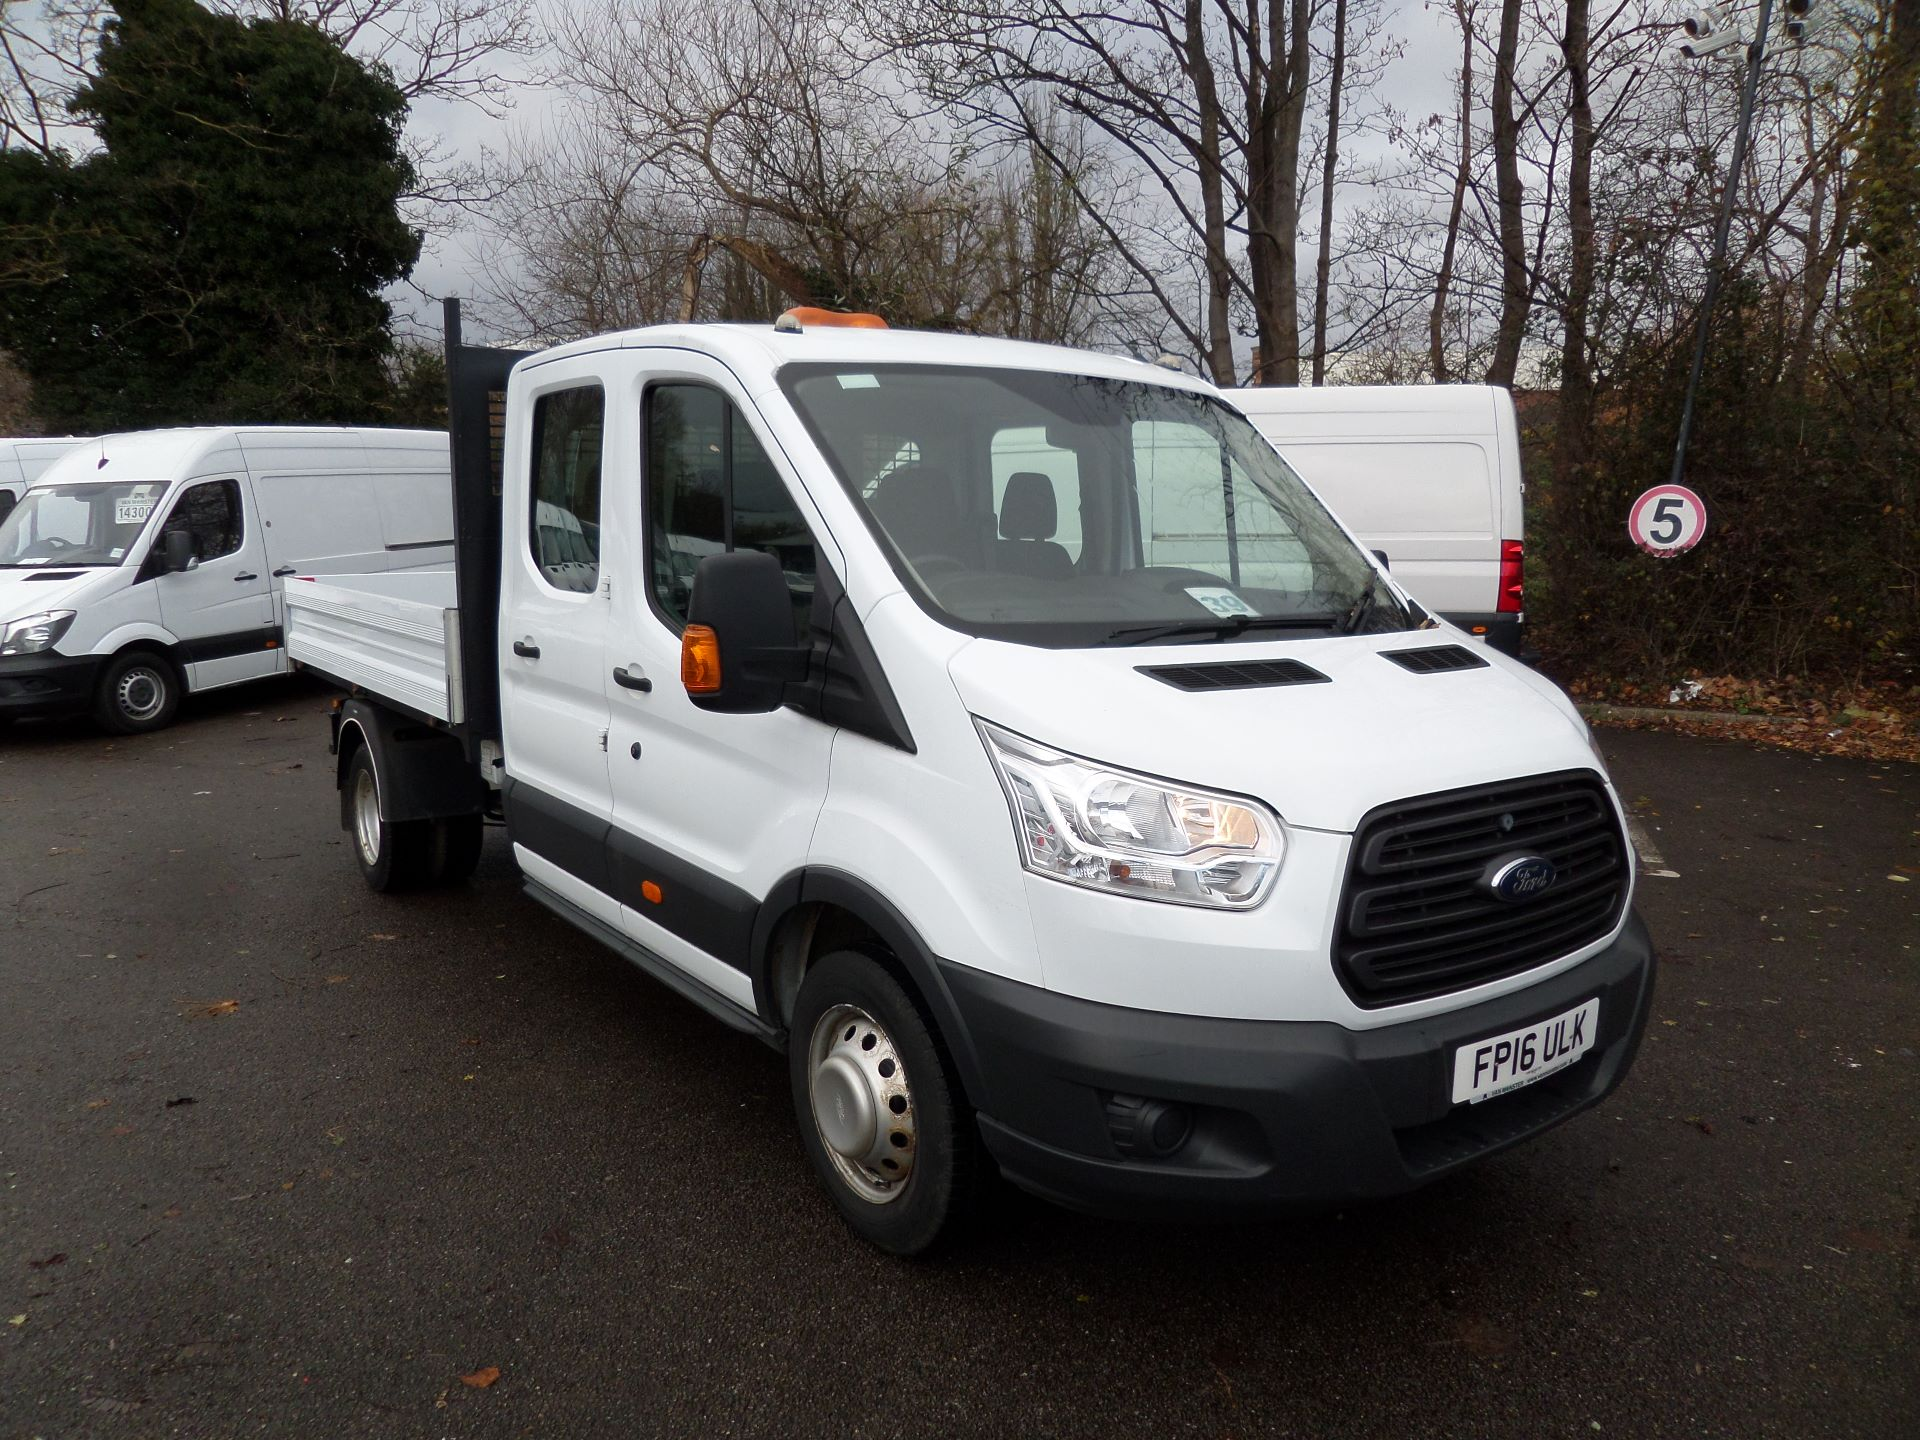 2016 Ford Transit 2.2 Tdci 125Ps 'One Stop' D/Cab Tipper [1 Way] Euro 5 (FP16ULK)